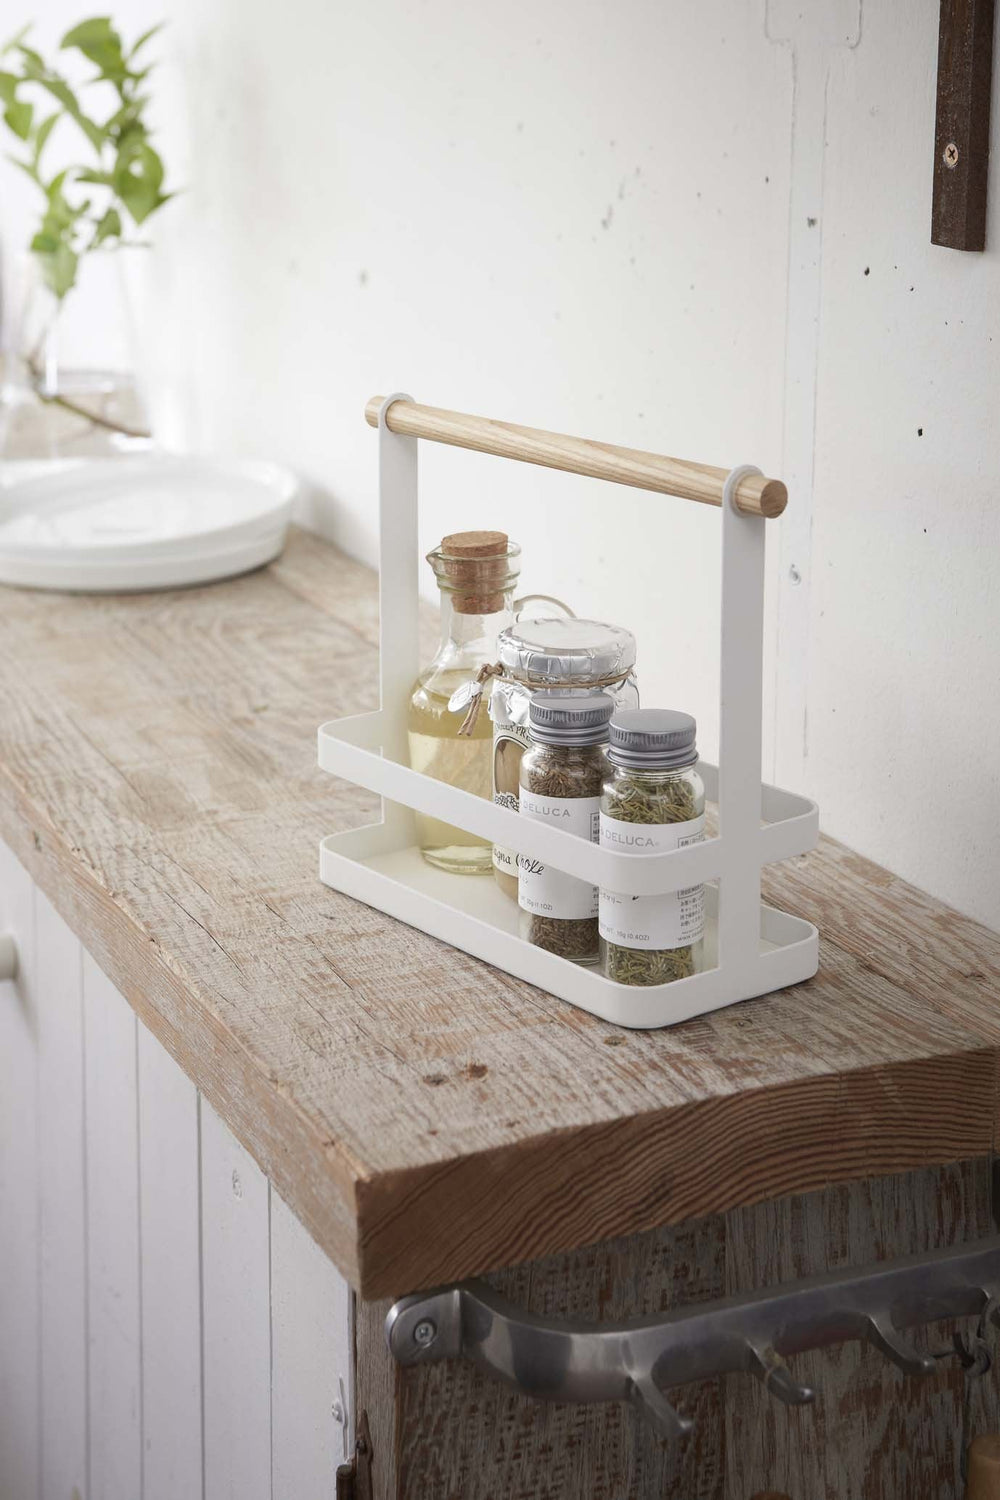 White metal spice rack holding spice canisters on a kitchen countertop